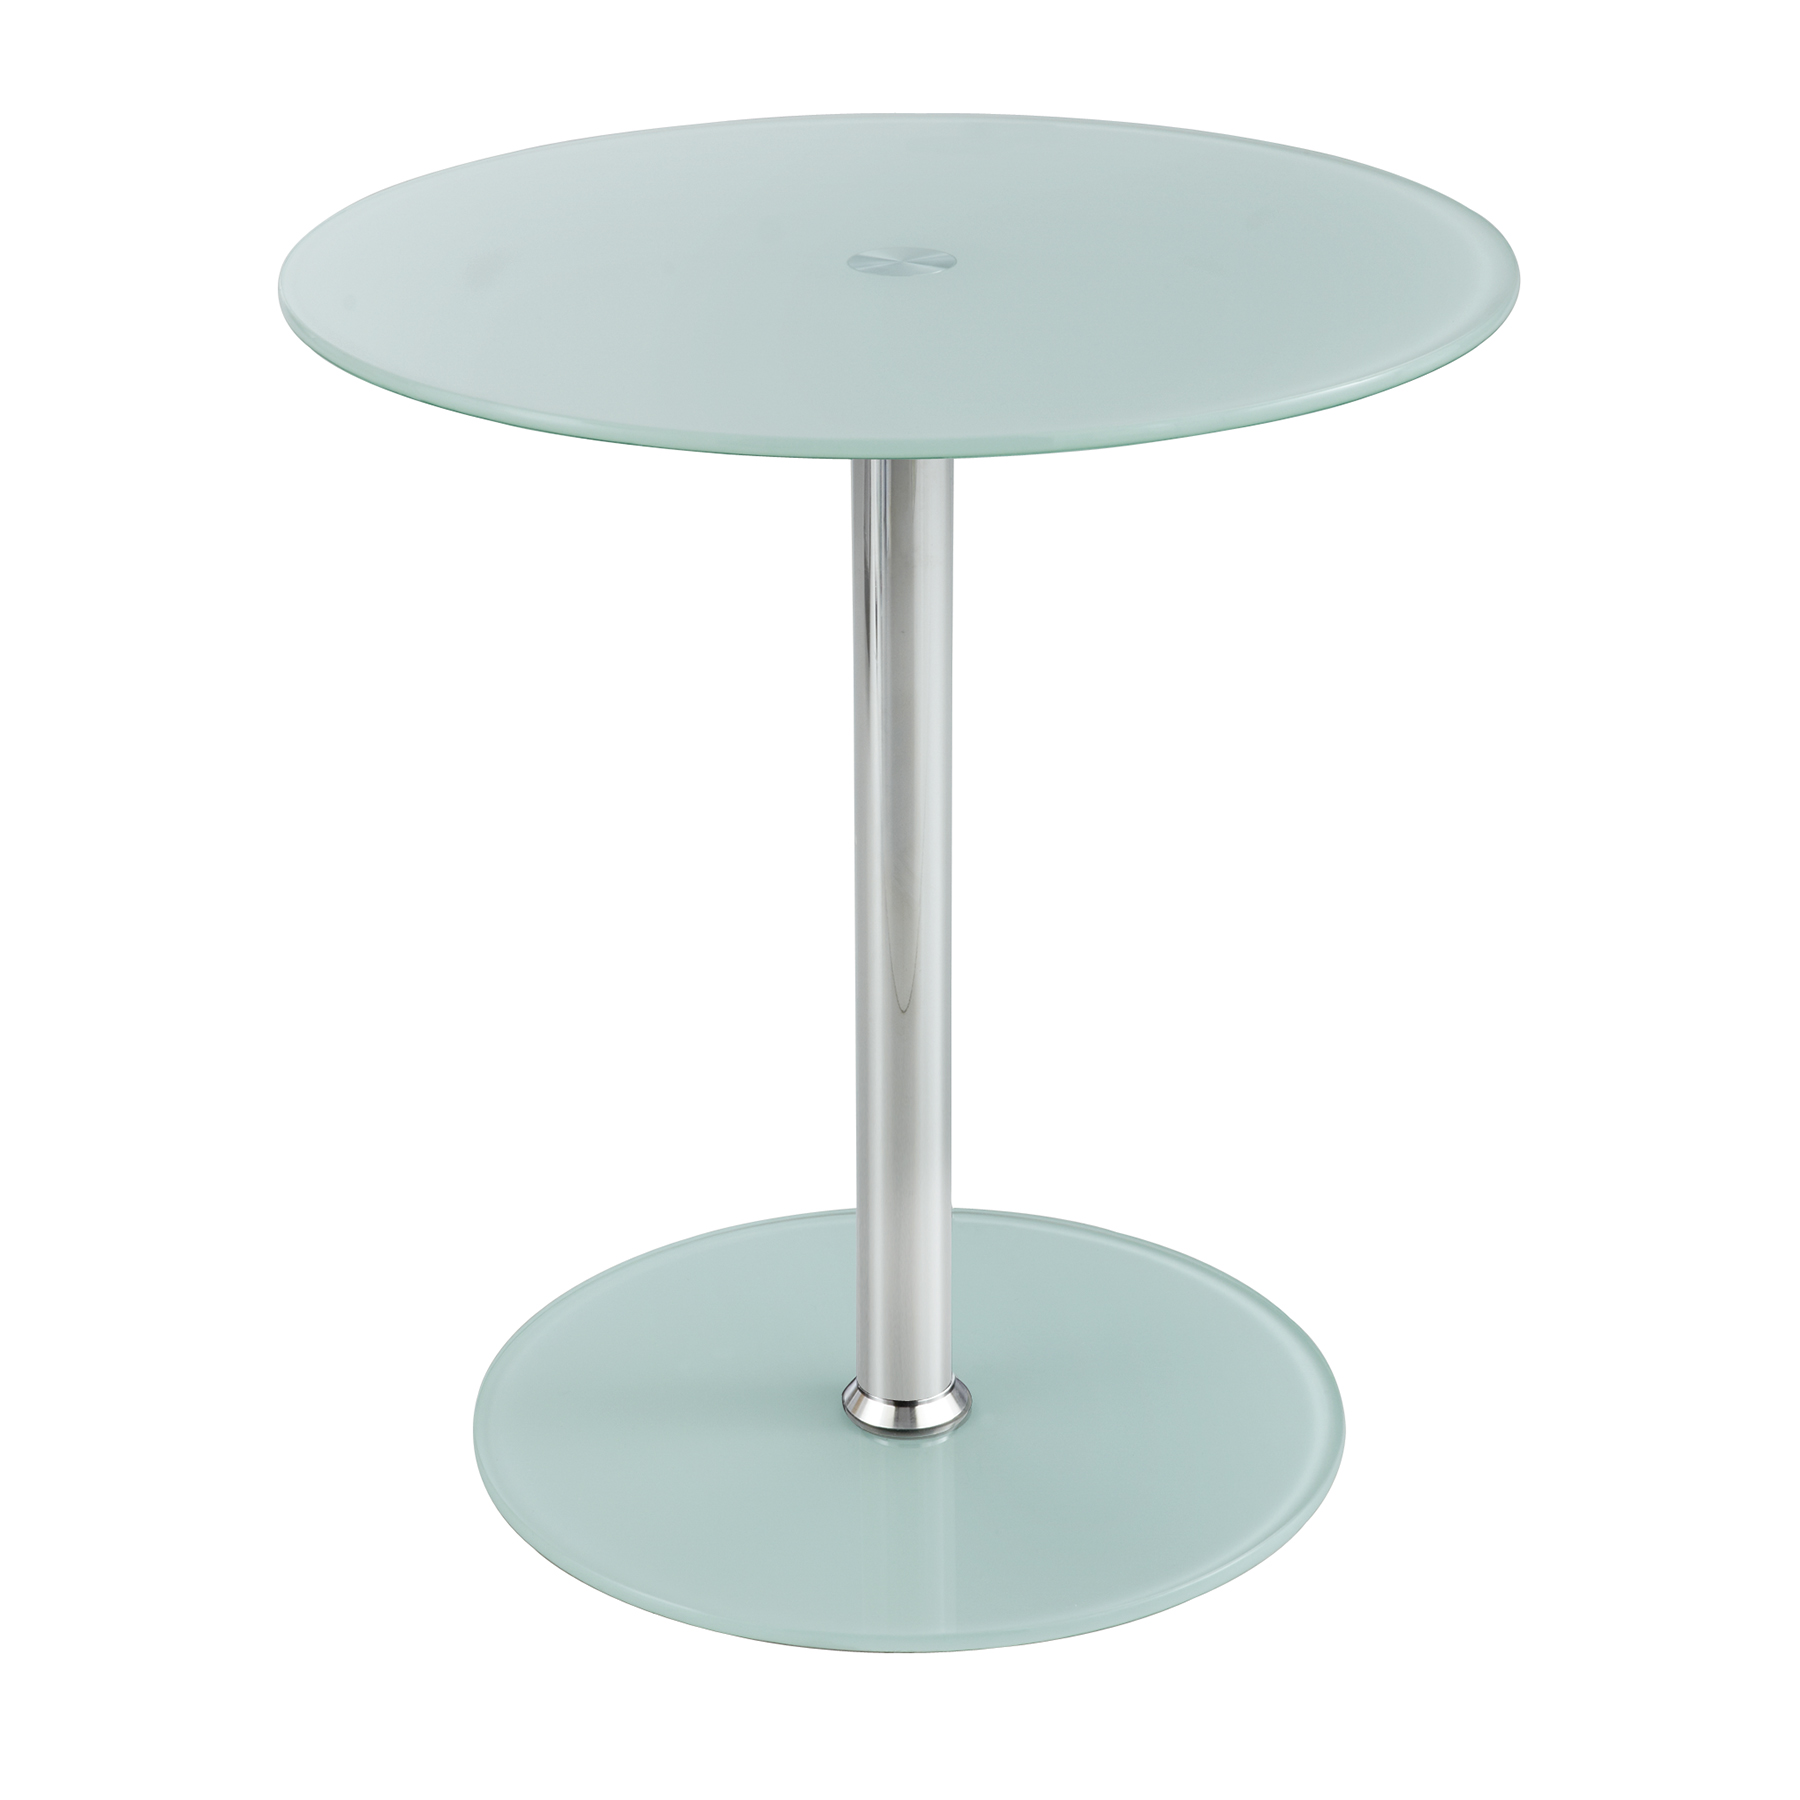 glass accent table safco products small sofa lamps cocktail coffee formal chairs round cotton tablecloth room essentials side kids writing desk outdoor umbrella lights younger